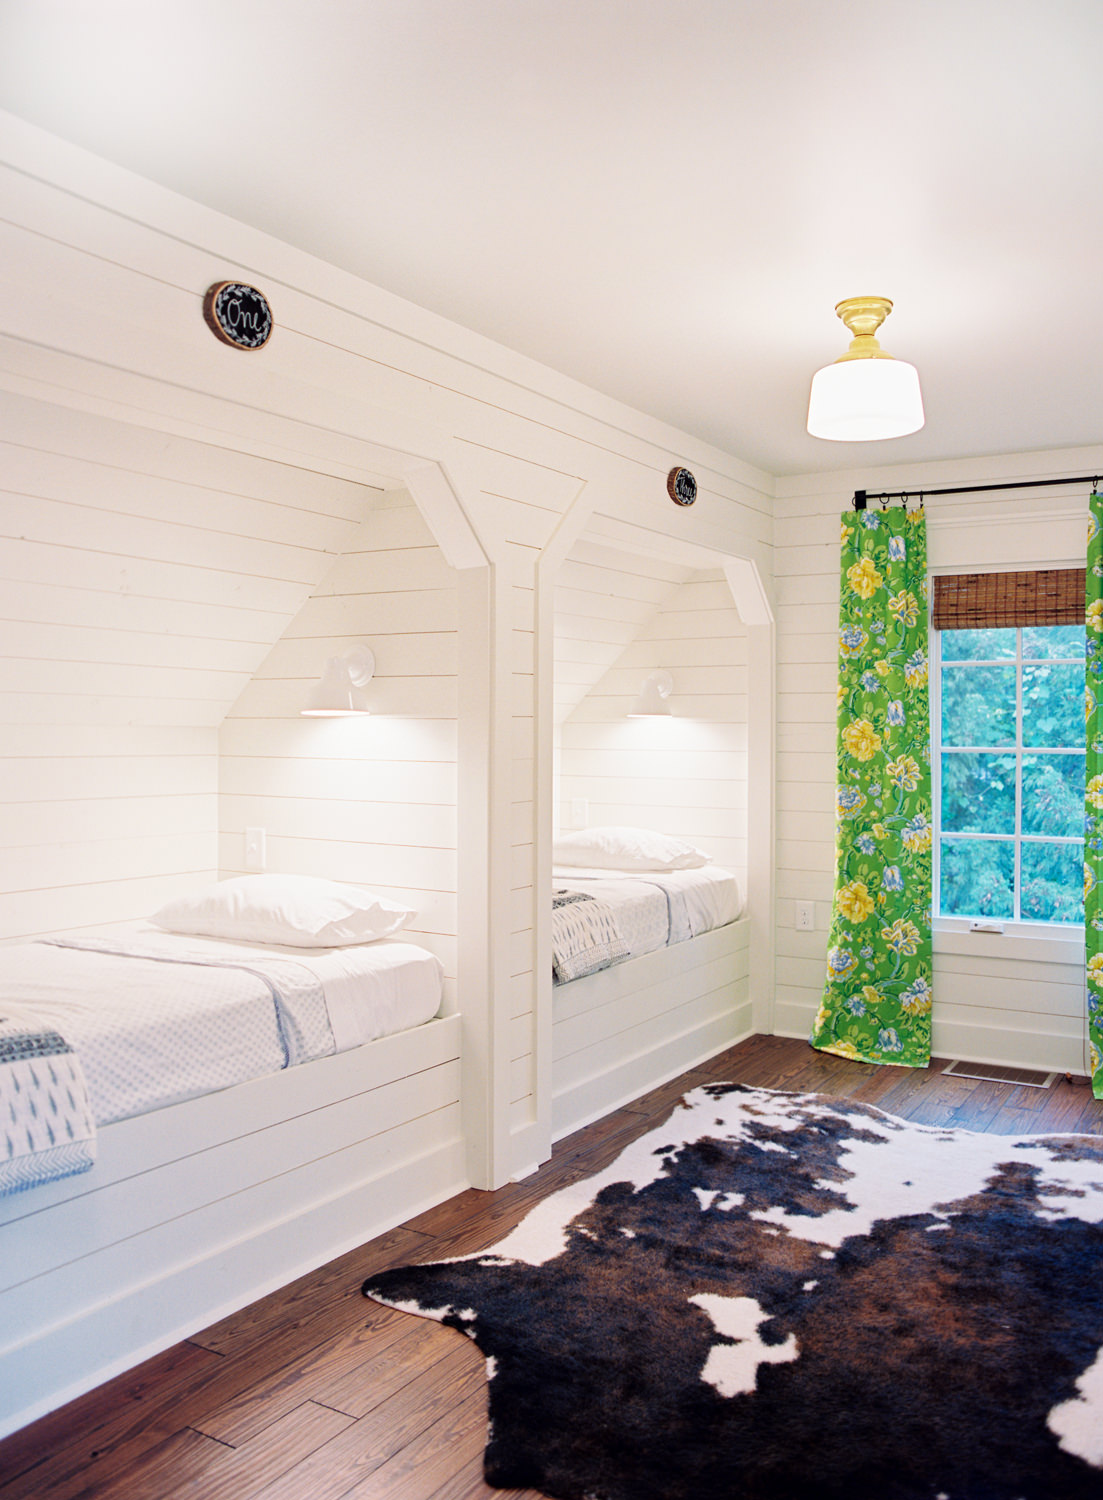 cottrell_photography_interiors-020